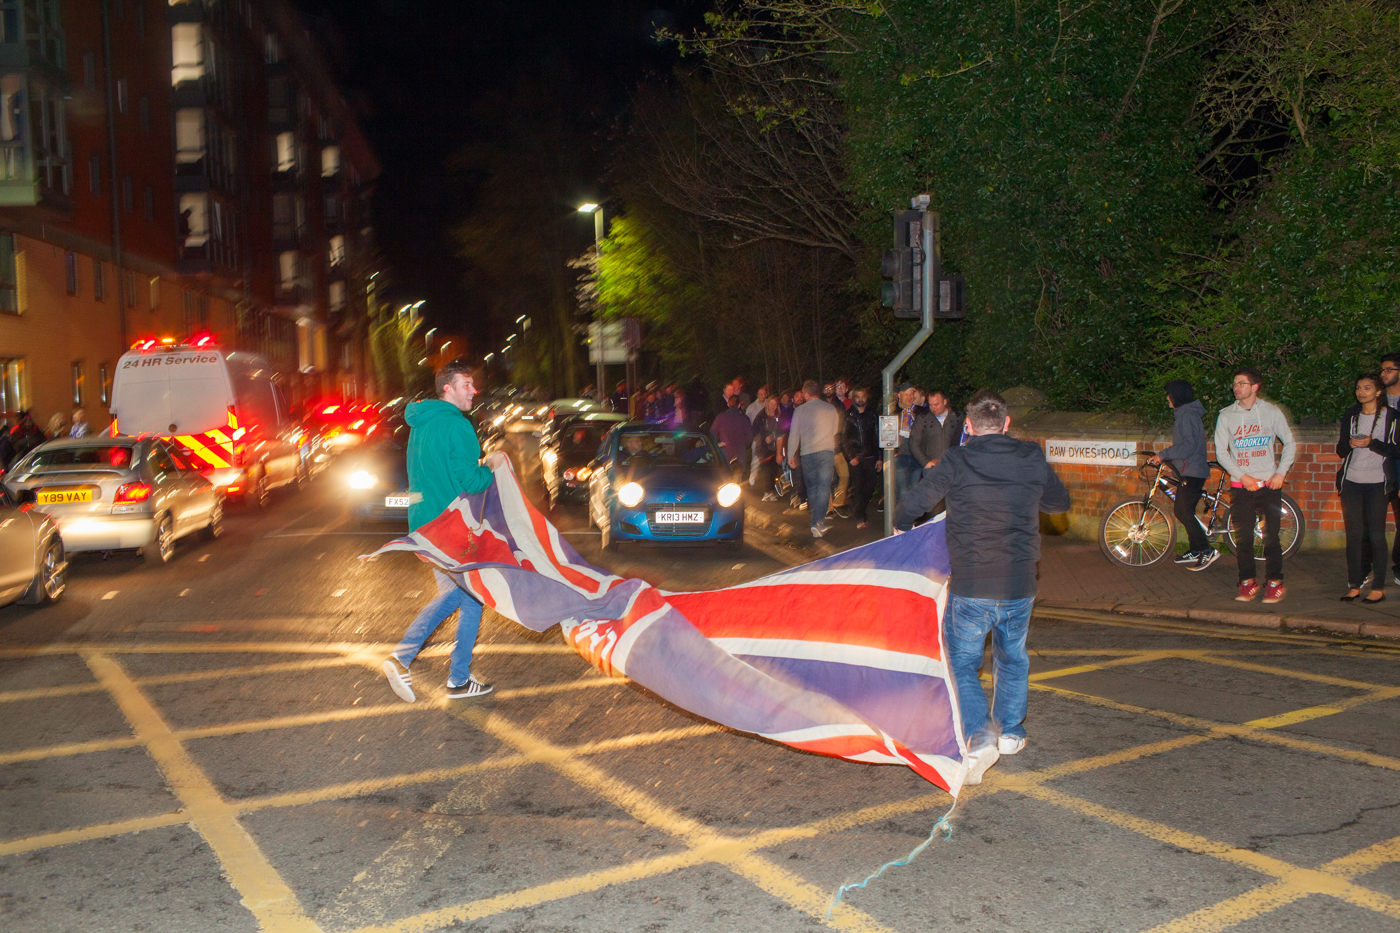 LEICESTER, UK MAY 2016Leicester City football fans carry a Union Flag through the street.On the 2nd May 2016, Leicester City football club became champions of England for the first time in their 132 year history.Leicester has been dubbed as most multicultural diversified city in England, thanks to scores of people that have flocked the city and who have hailed from different parts of the world. According to the Leicester city council, the city has the highest number of immigrants who have sought both temporary and permanent residence in England. Majority of these immigrants are people who have left their home countries in pursuit of job opportunities in England.  Photo by Peter Dench/Getty Images Assignment for ESPN